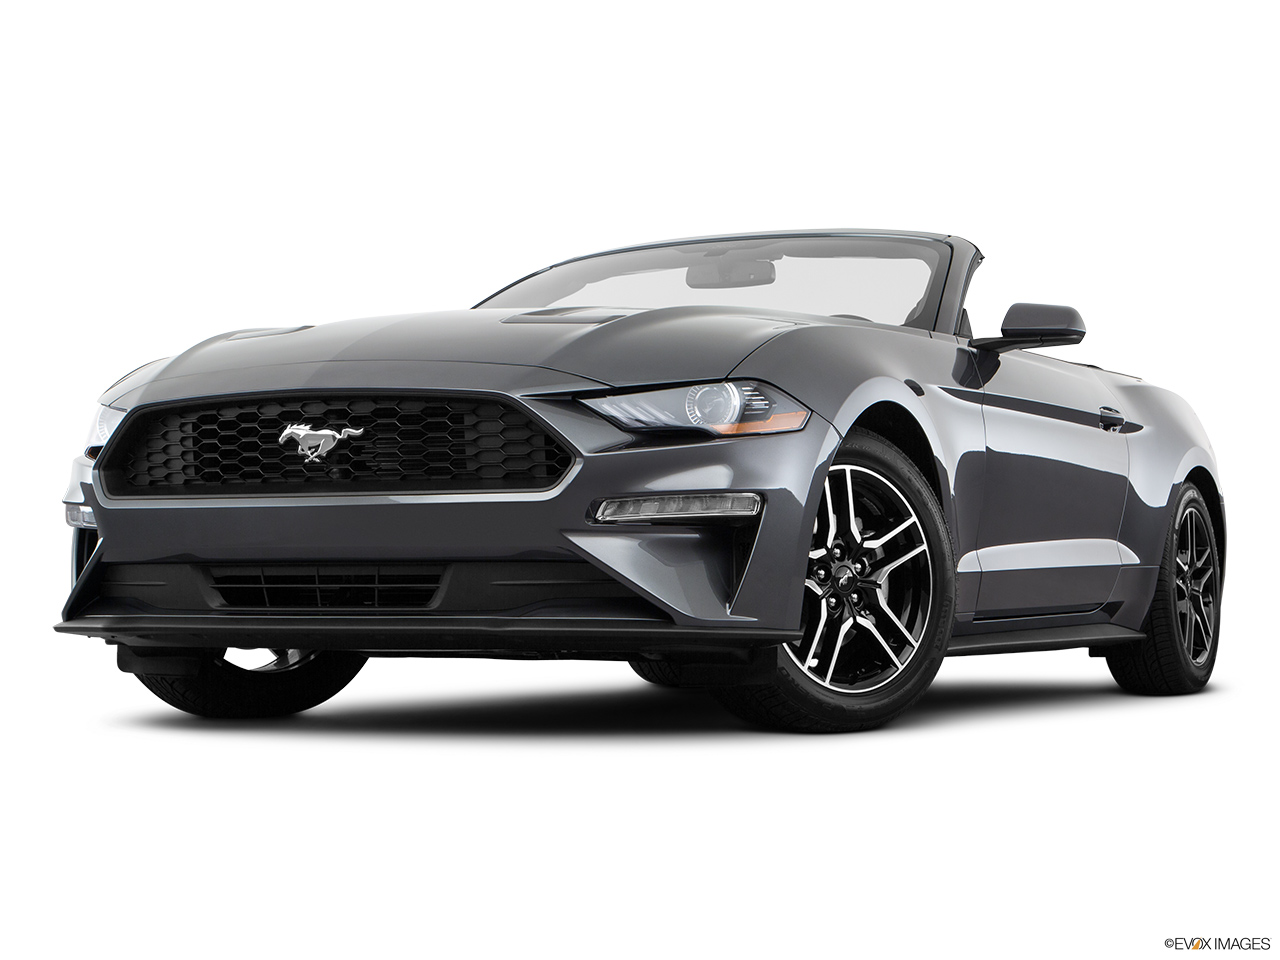 Ford Mustang 2018, Saudi Arabia, Front angle view, low wide perspective.